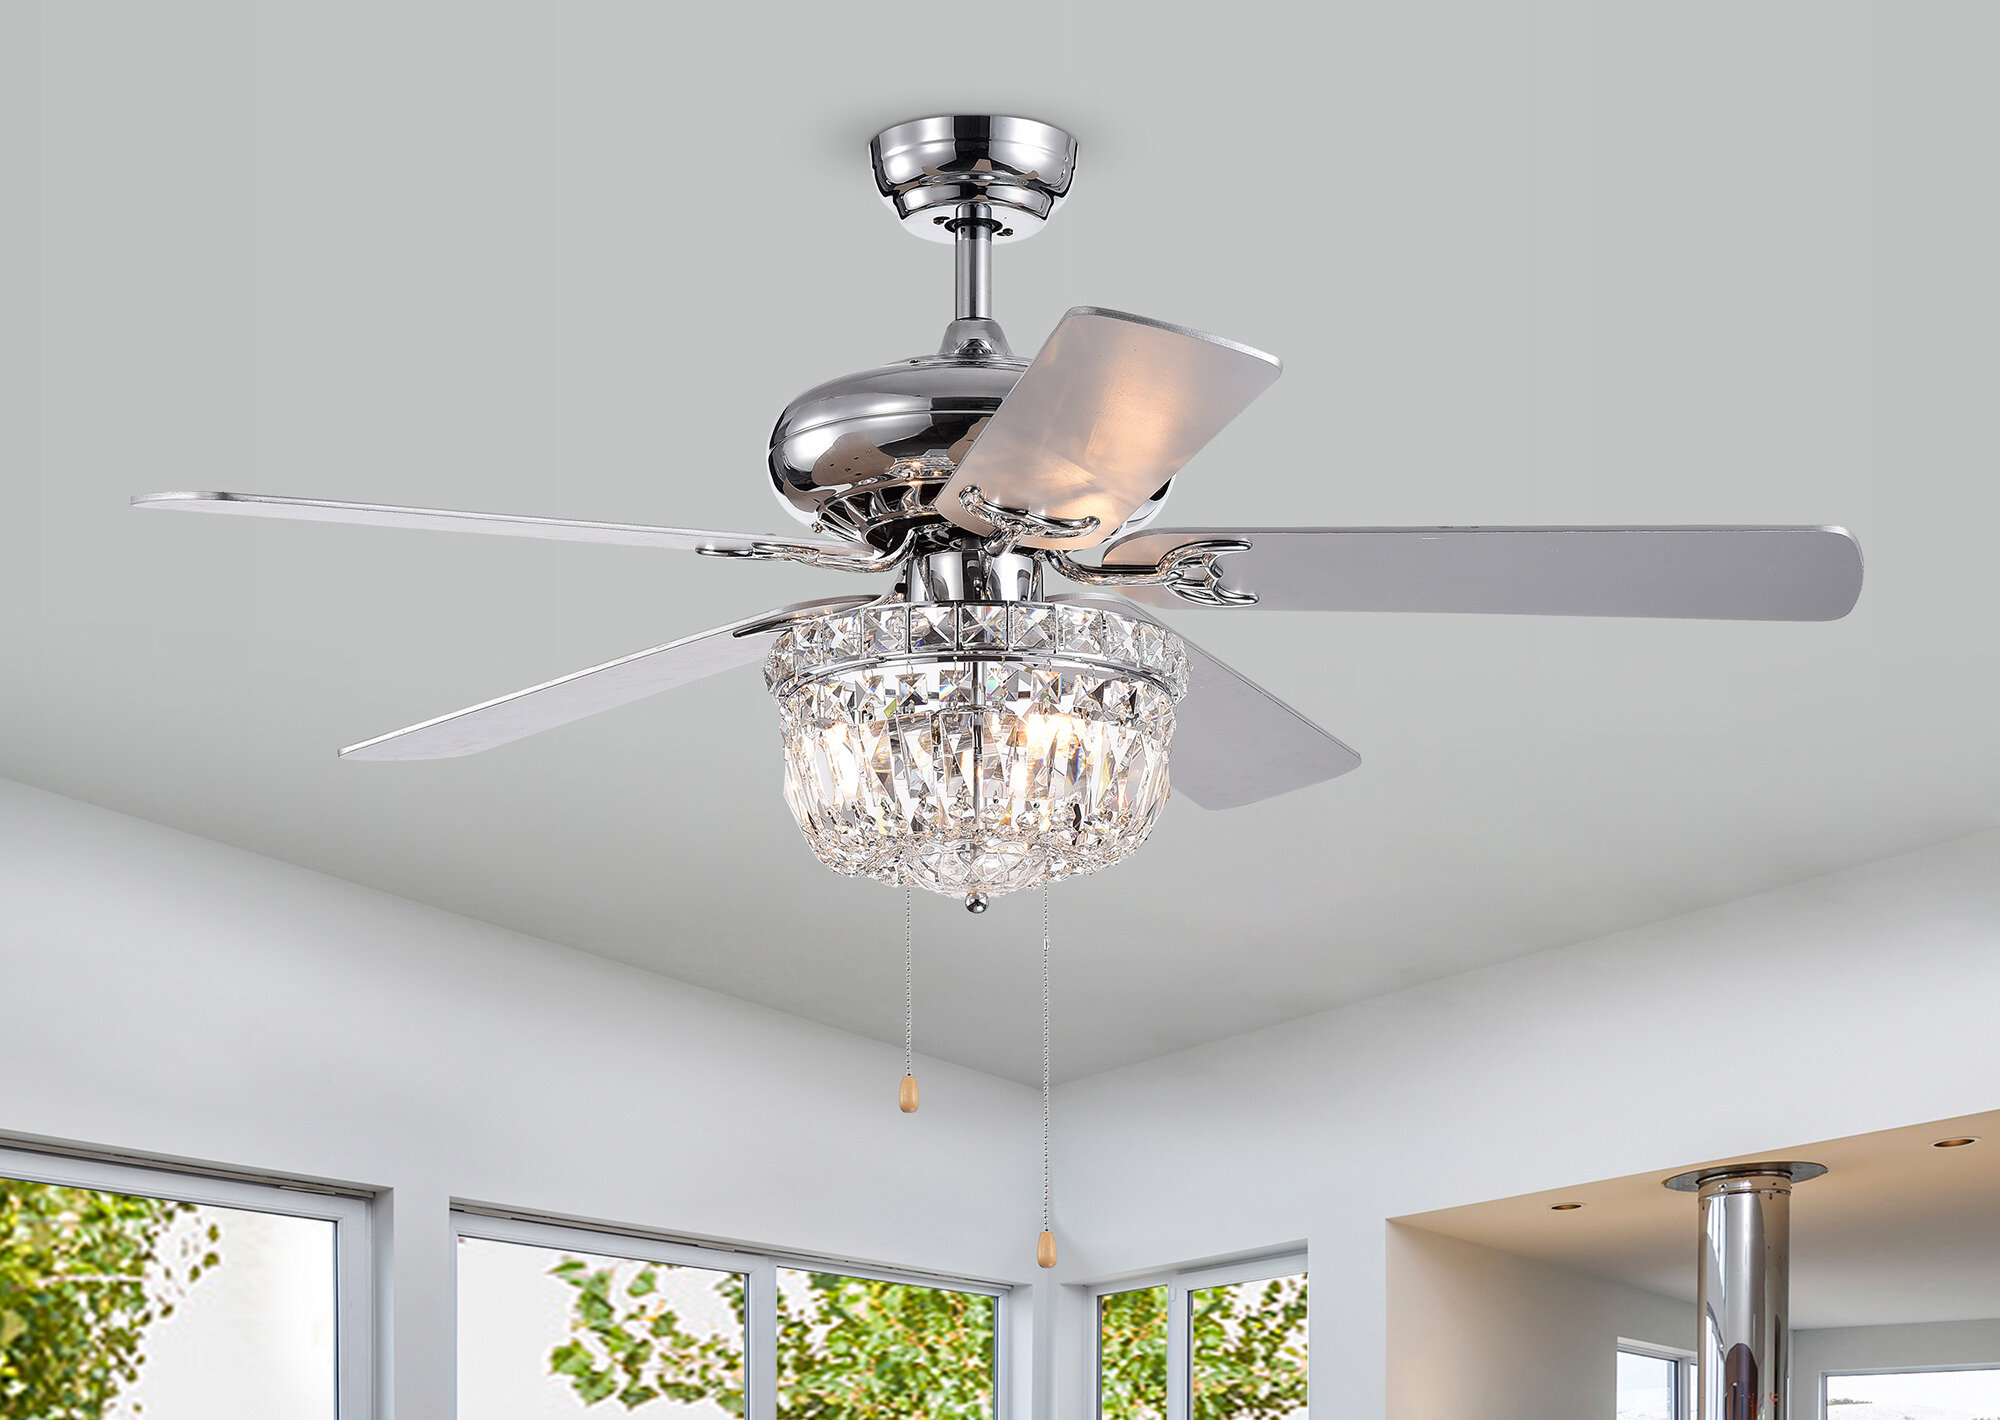 House Of Hampton 52 Rettig 5 Blade Crystal Ceiling Fan With Pull Chain And Light Kit Included Wayfair